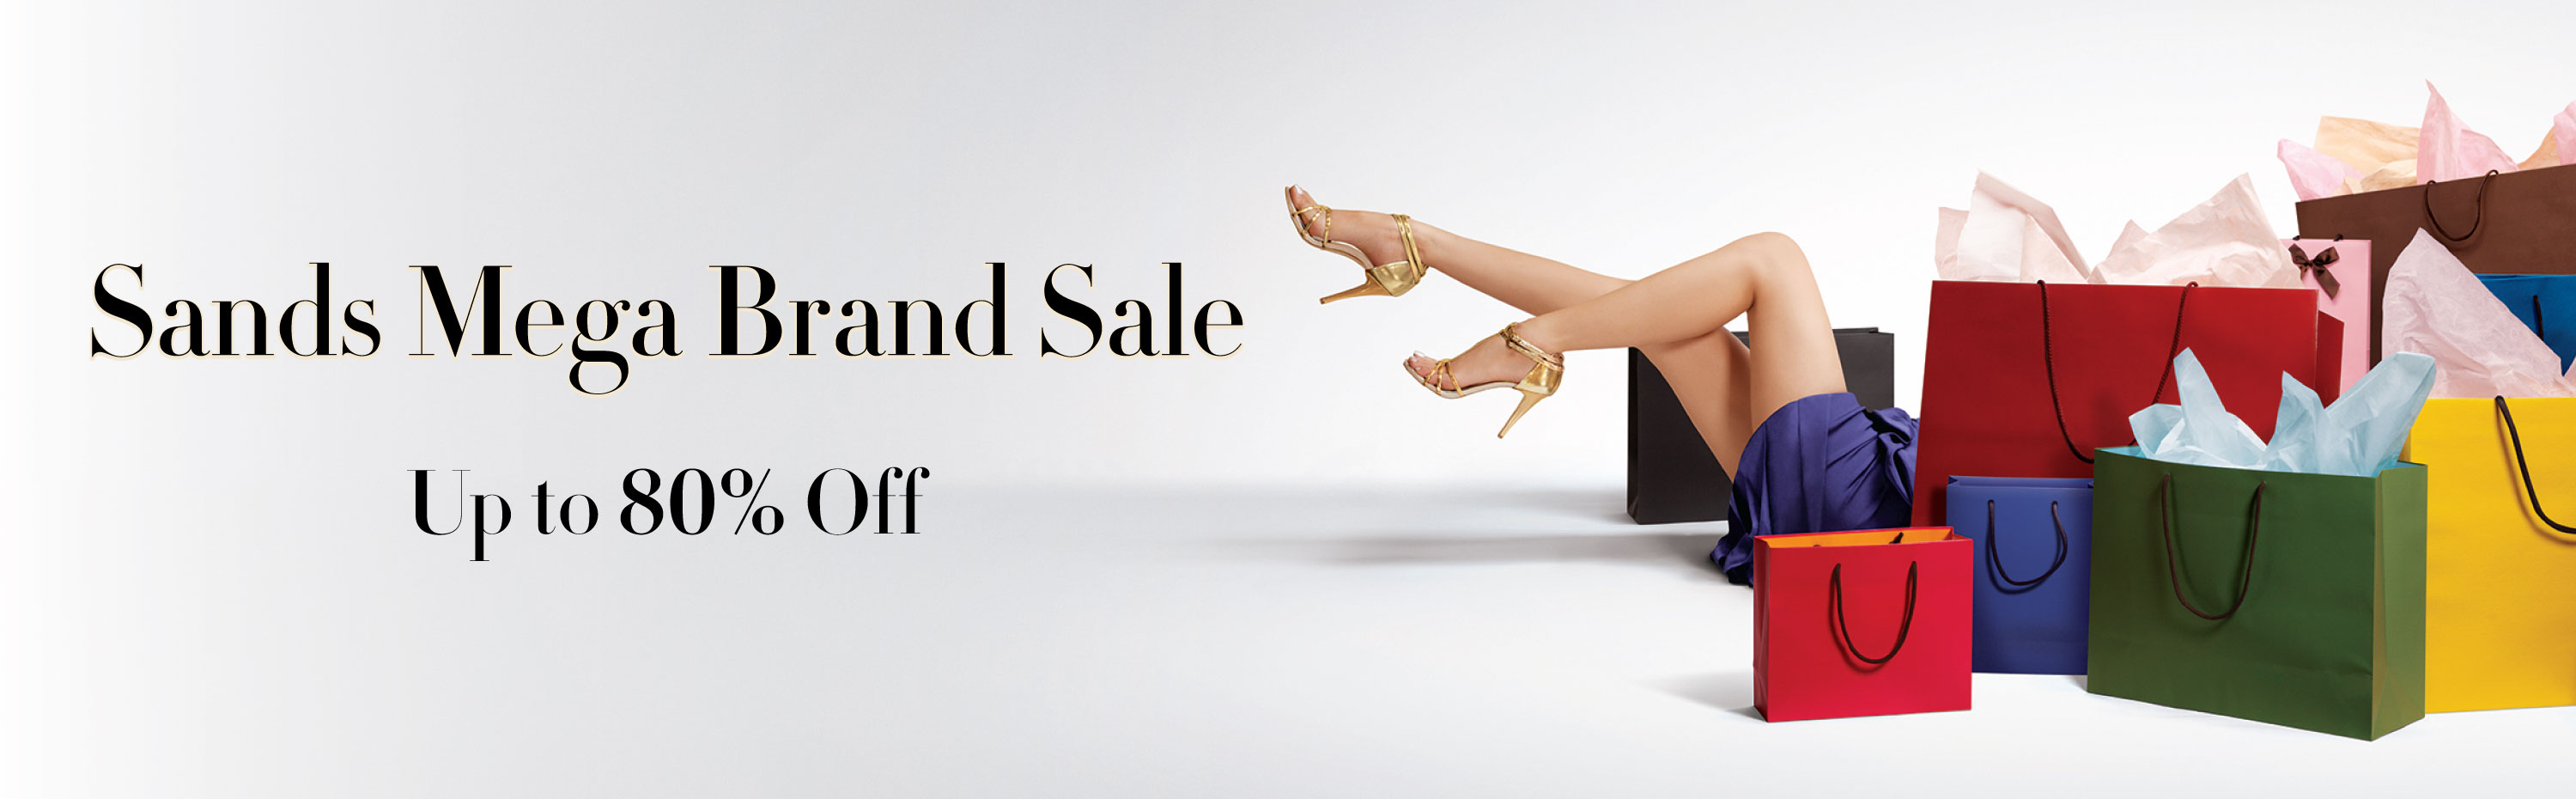 Sands Mega Brand Sale 2017 – UP TO 80% OFF